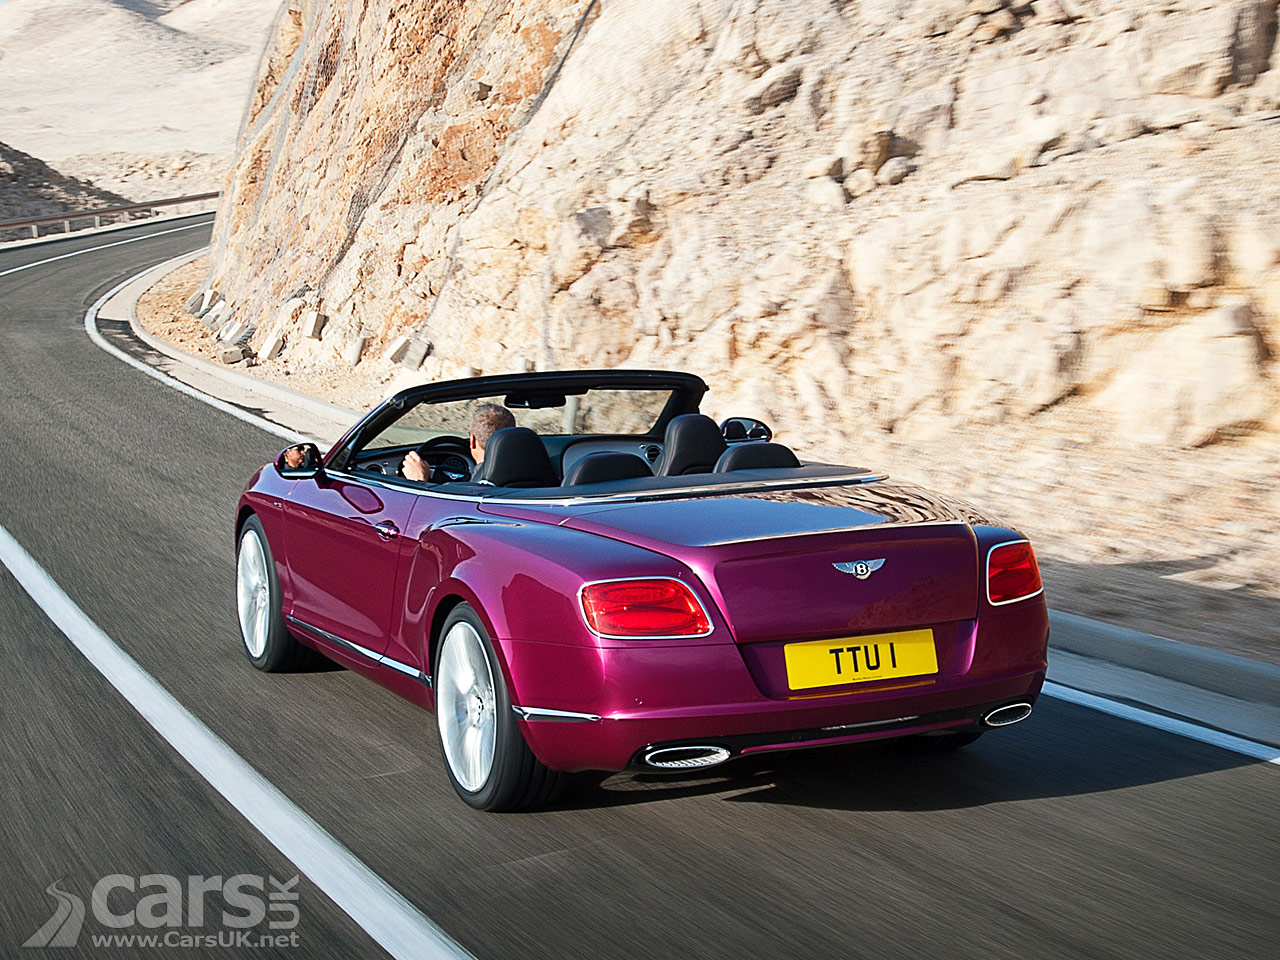 Bentley-Continental-GT-Speed-Convertible-Pictures-wallpaper-wp422694-1